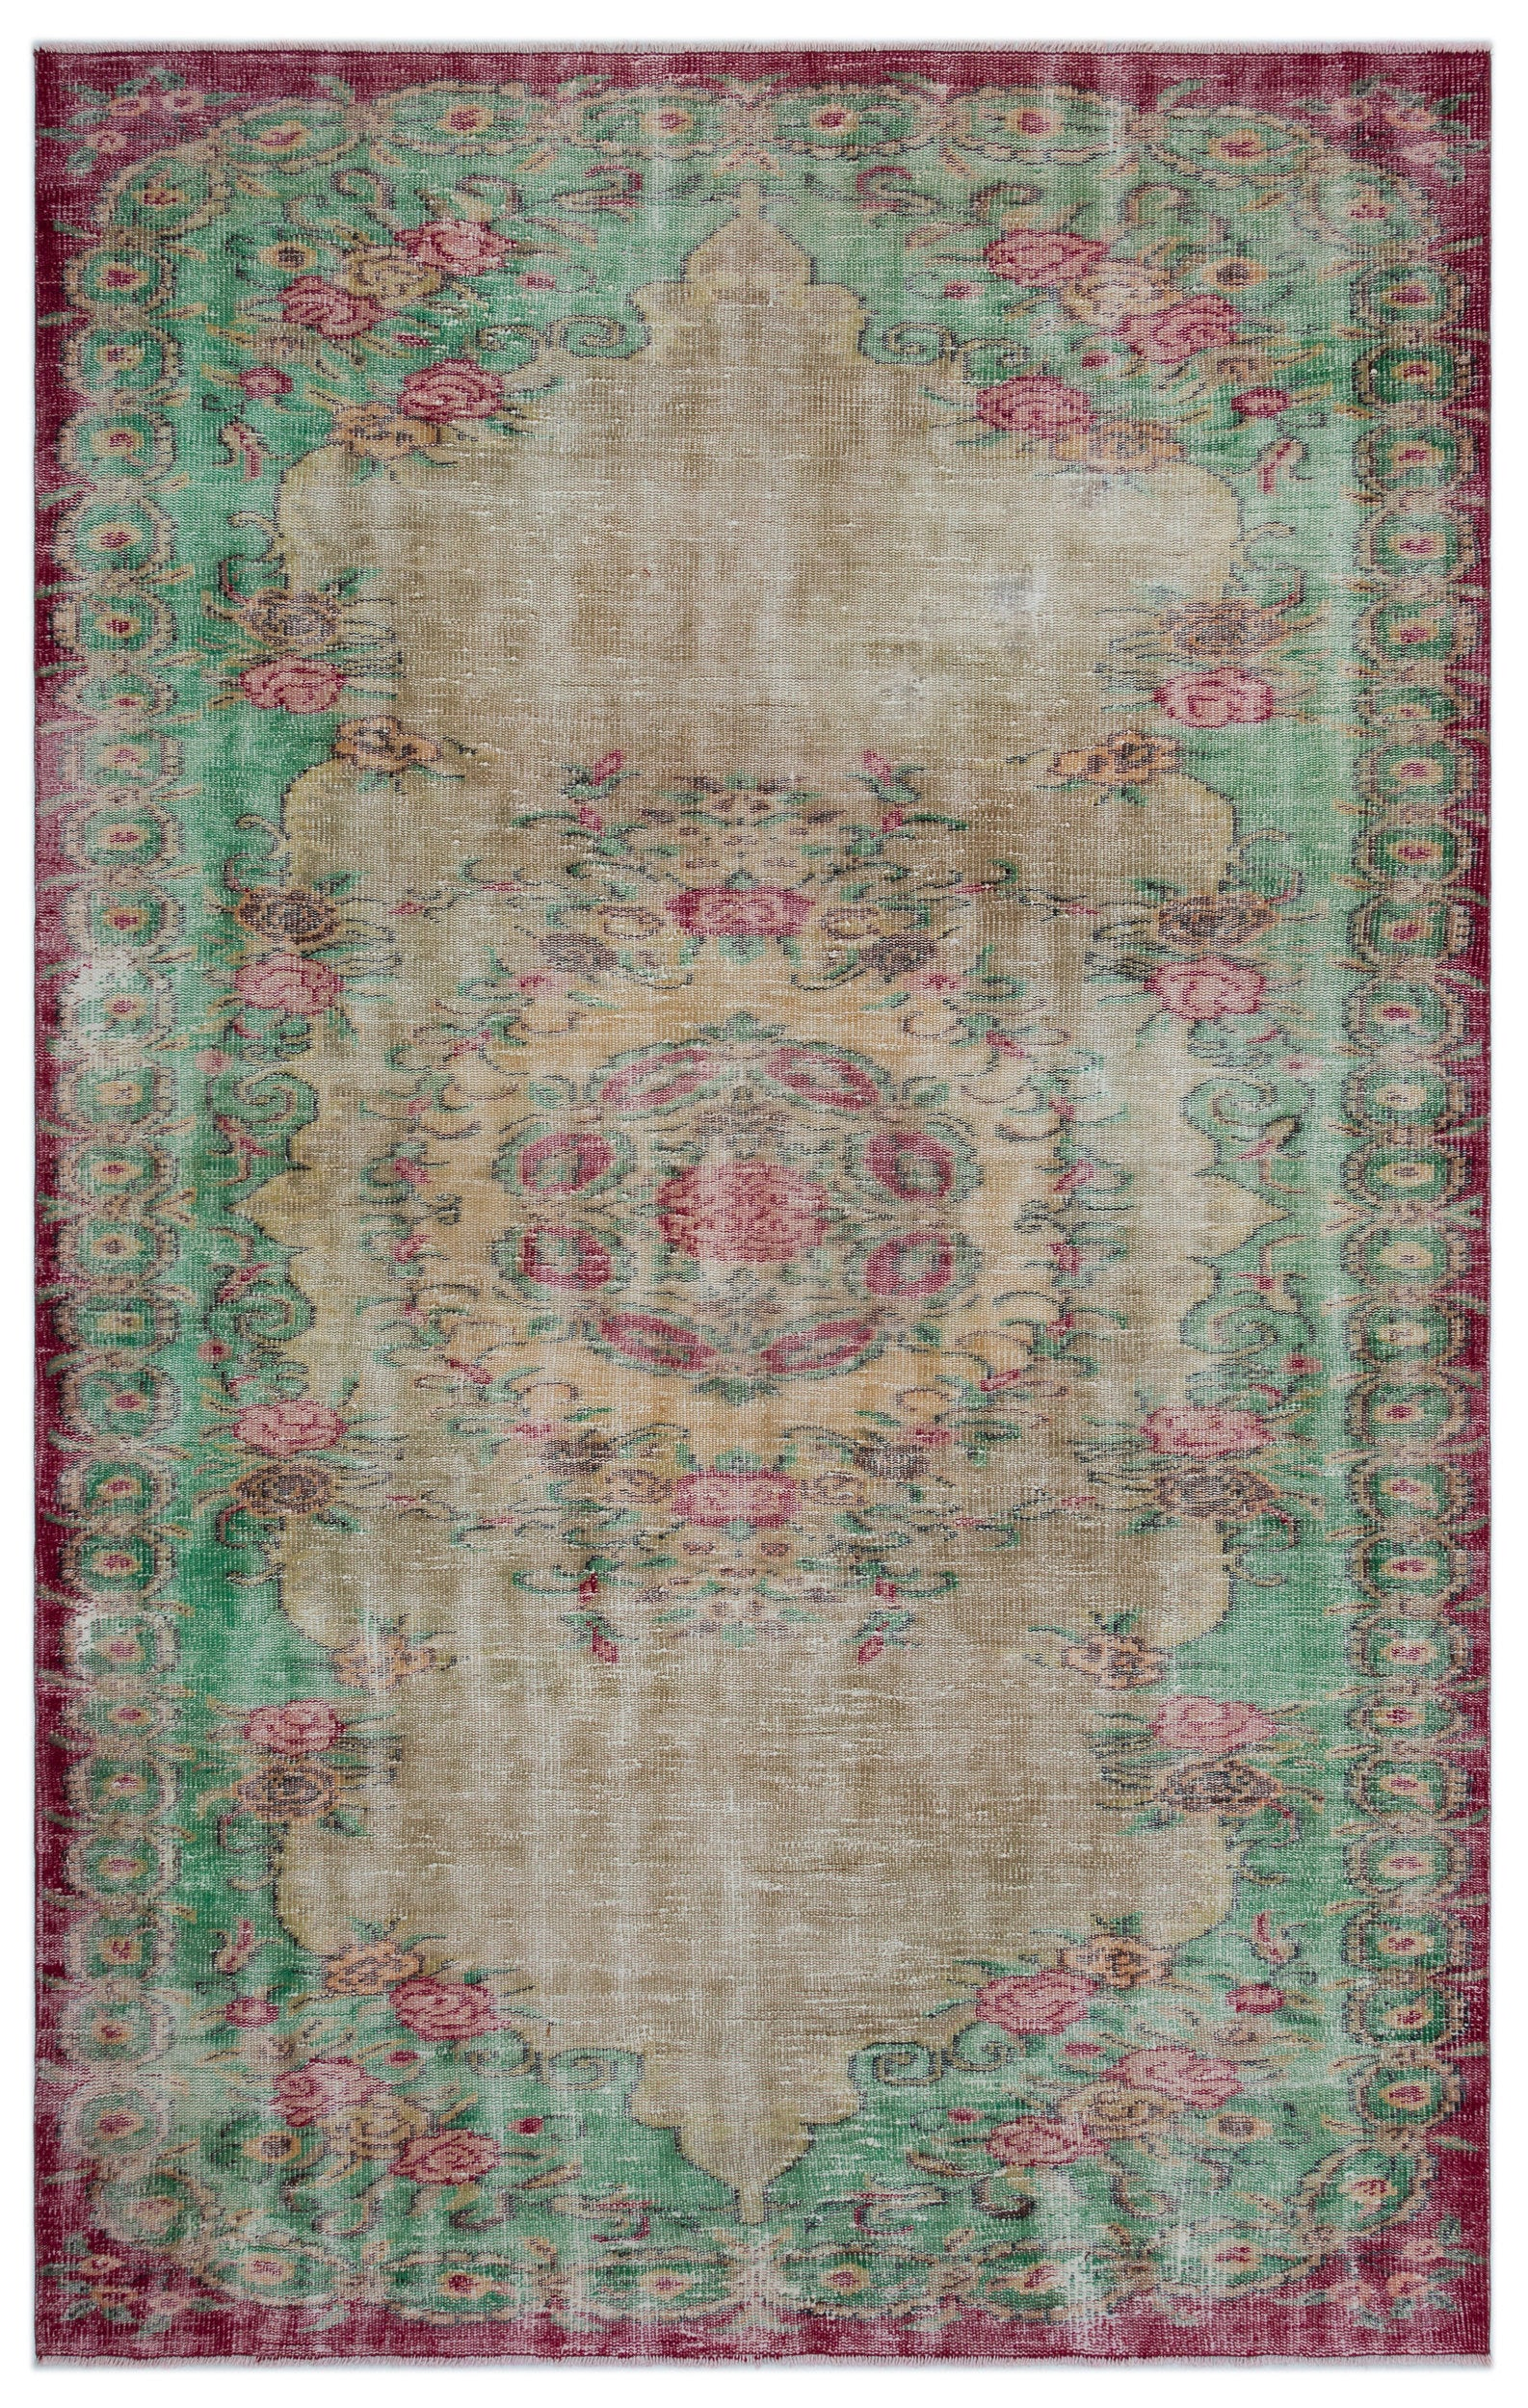 Retro Over Dyed Vintage Rug 6'0'' x 9'7'' ft 184 x 292 cm